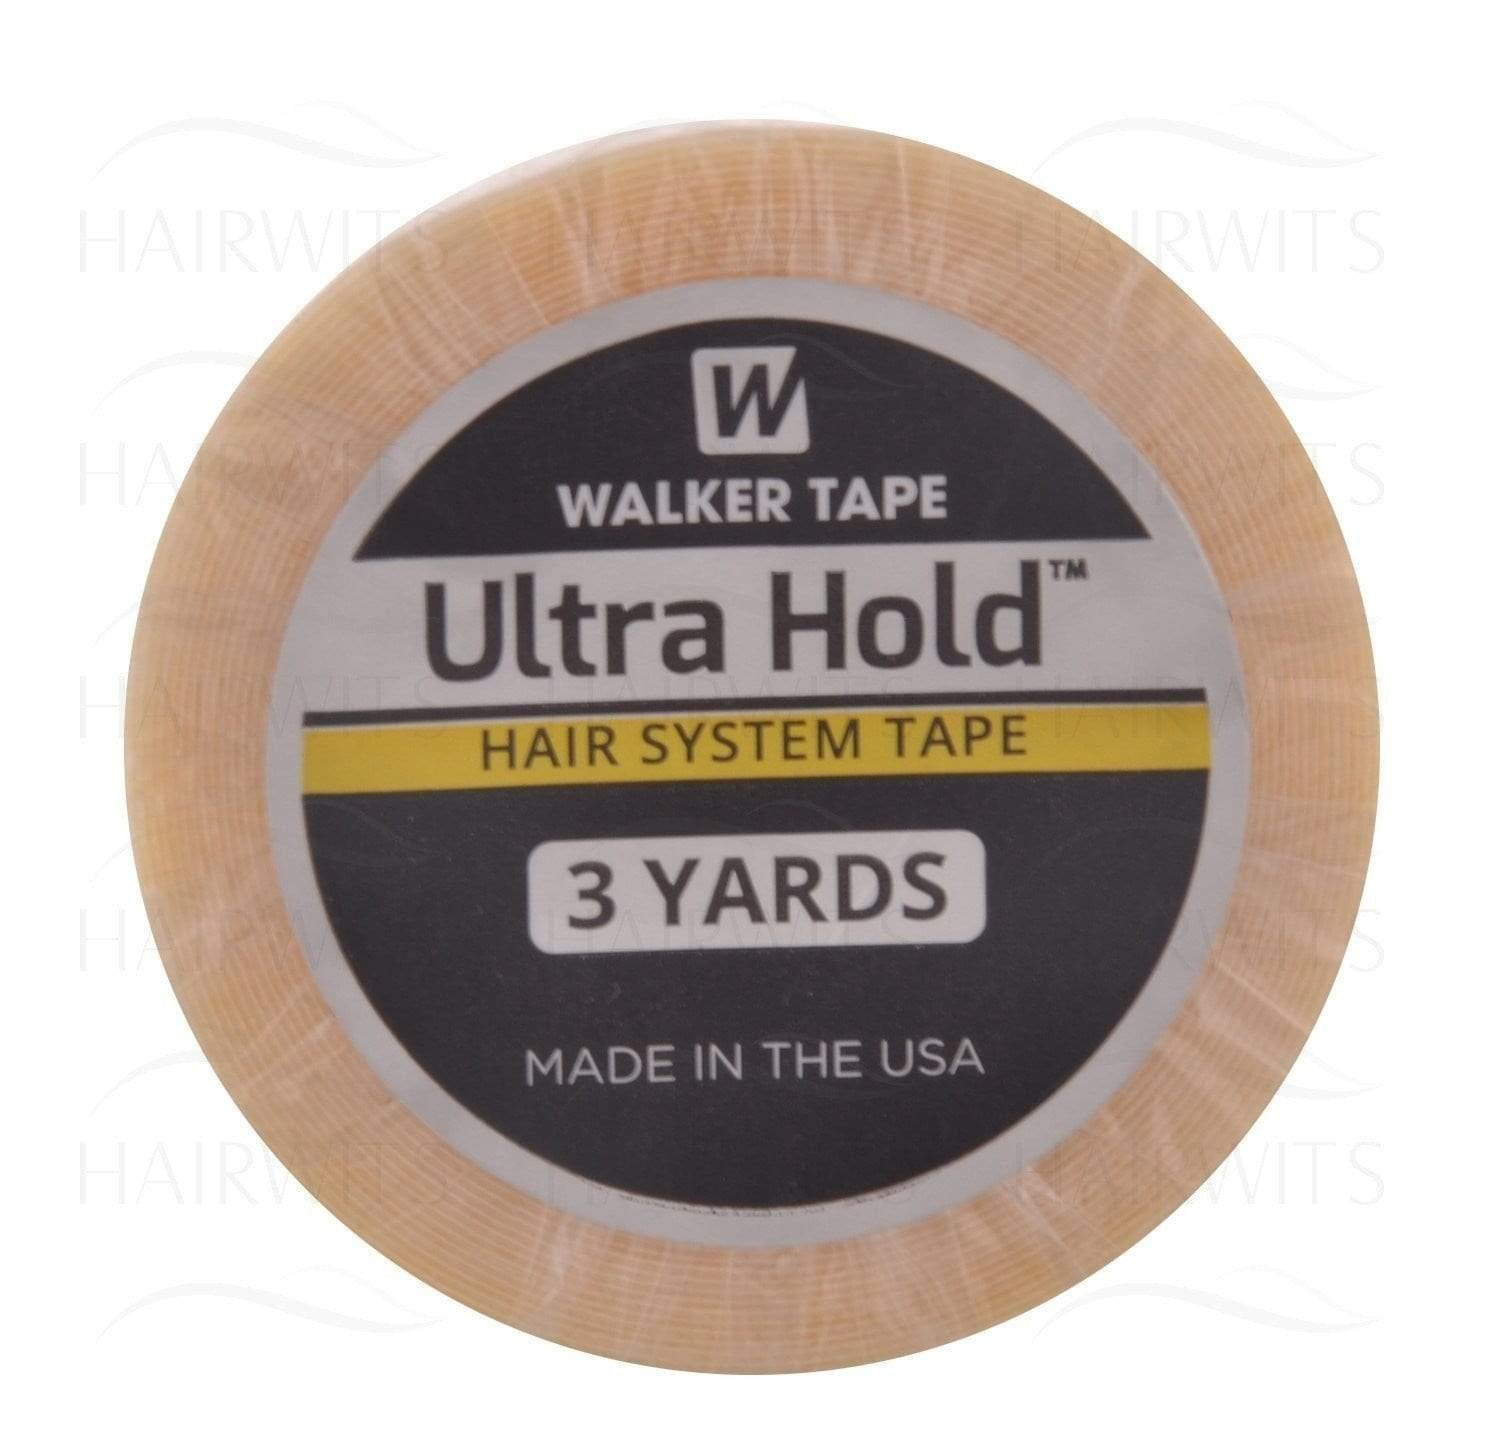 Walker Tape Ultra Hold Tape Roll For Hair System/Wigs Attachment (.75'' -3 YDS)